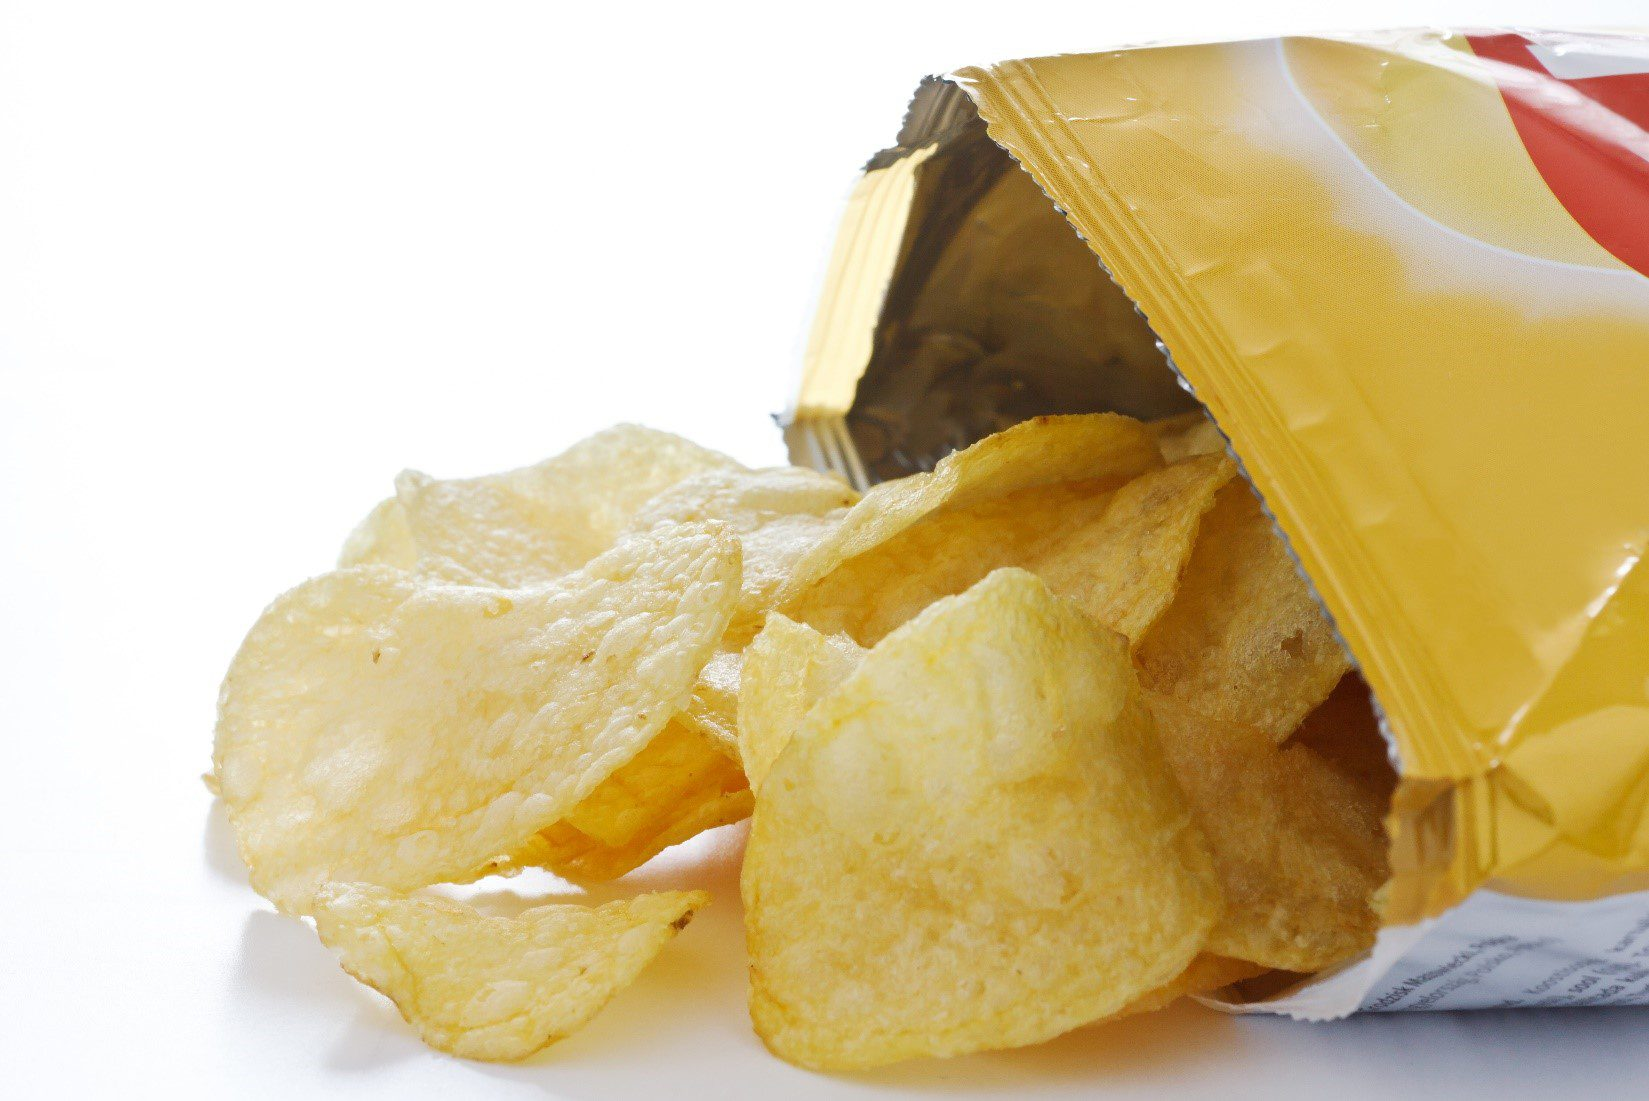 Potato chip bag sealed by VFFS machine